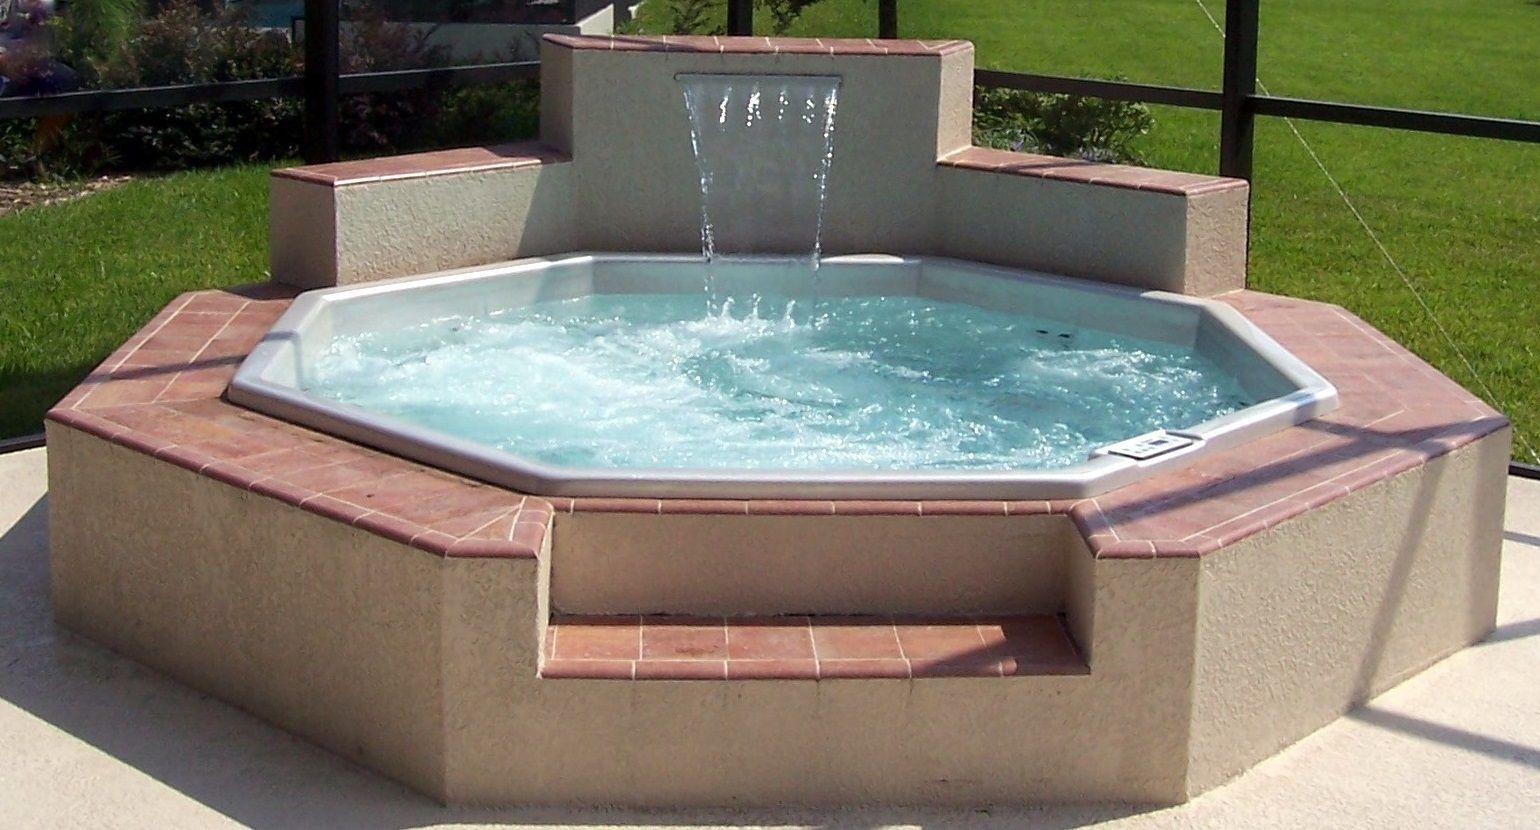 One Call We Fixall 678 Fixspas In Cumming Ga Fixall Spas